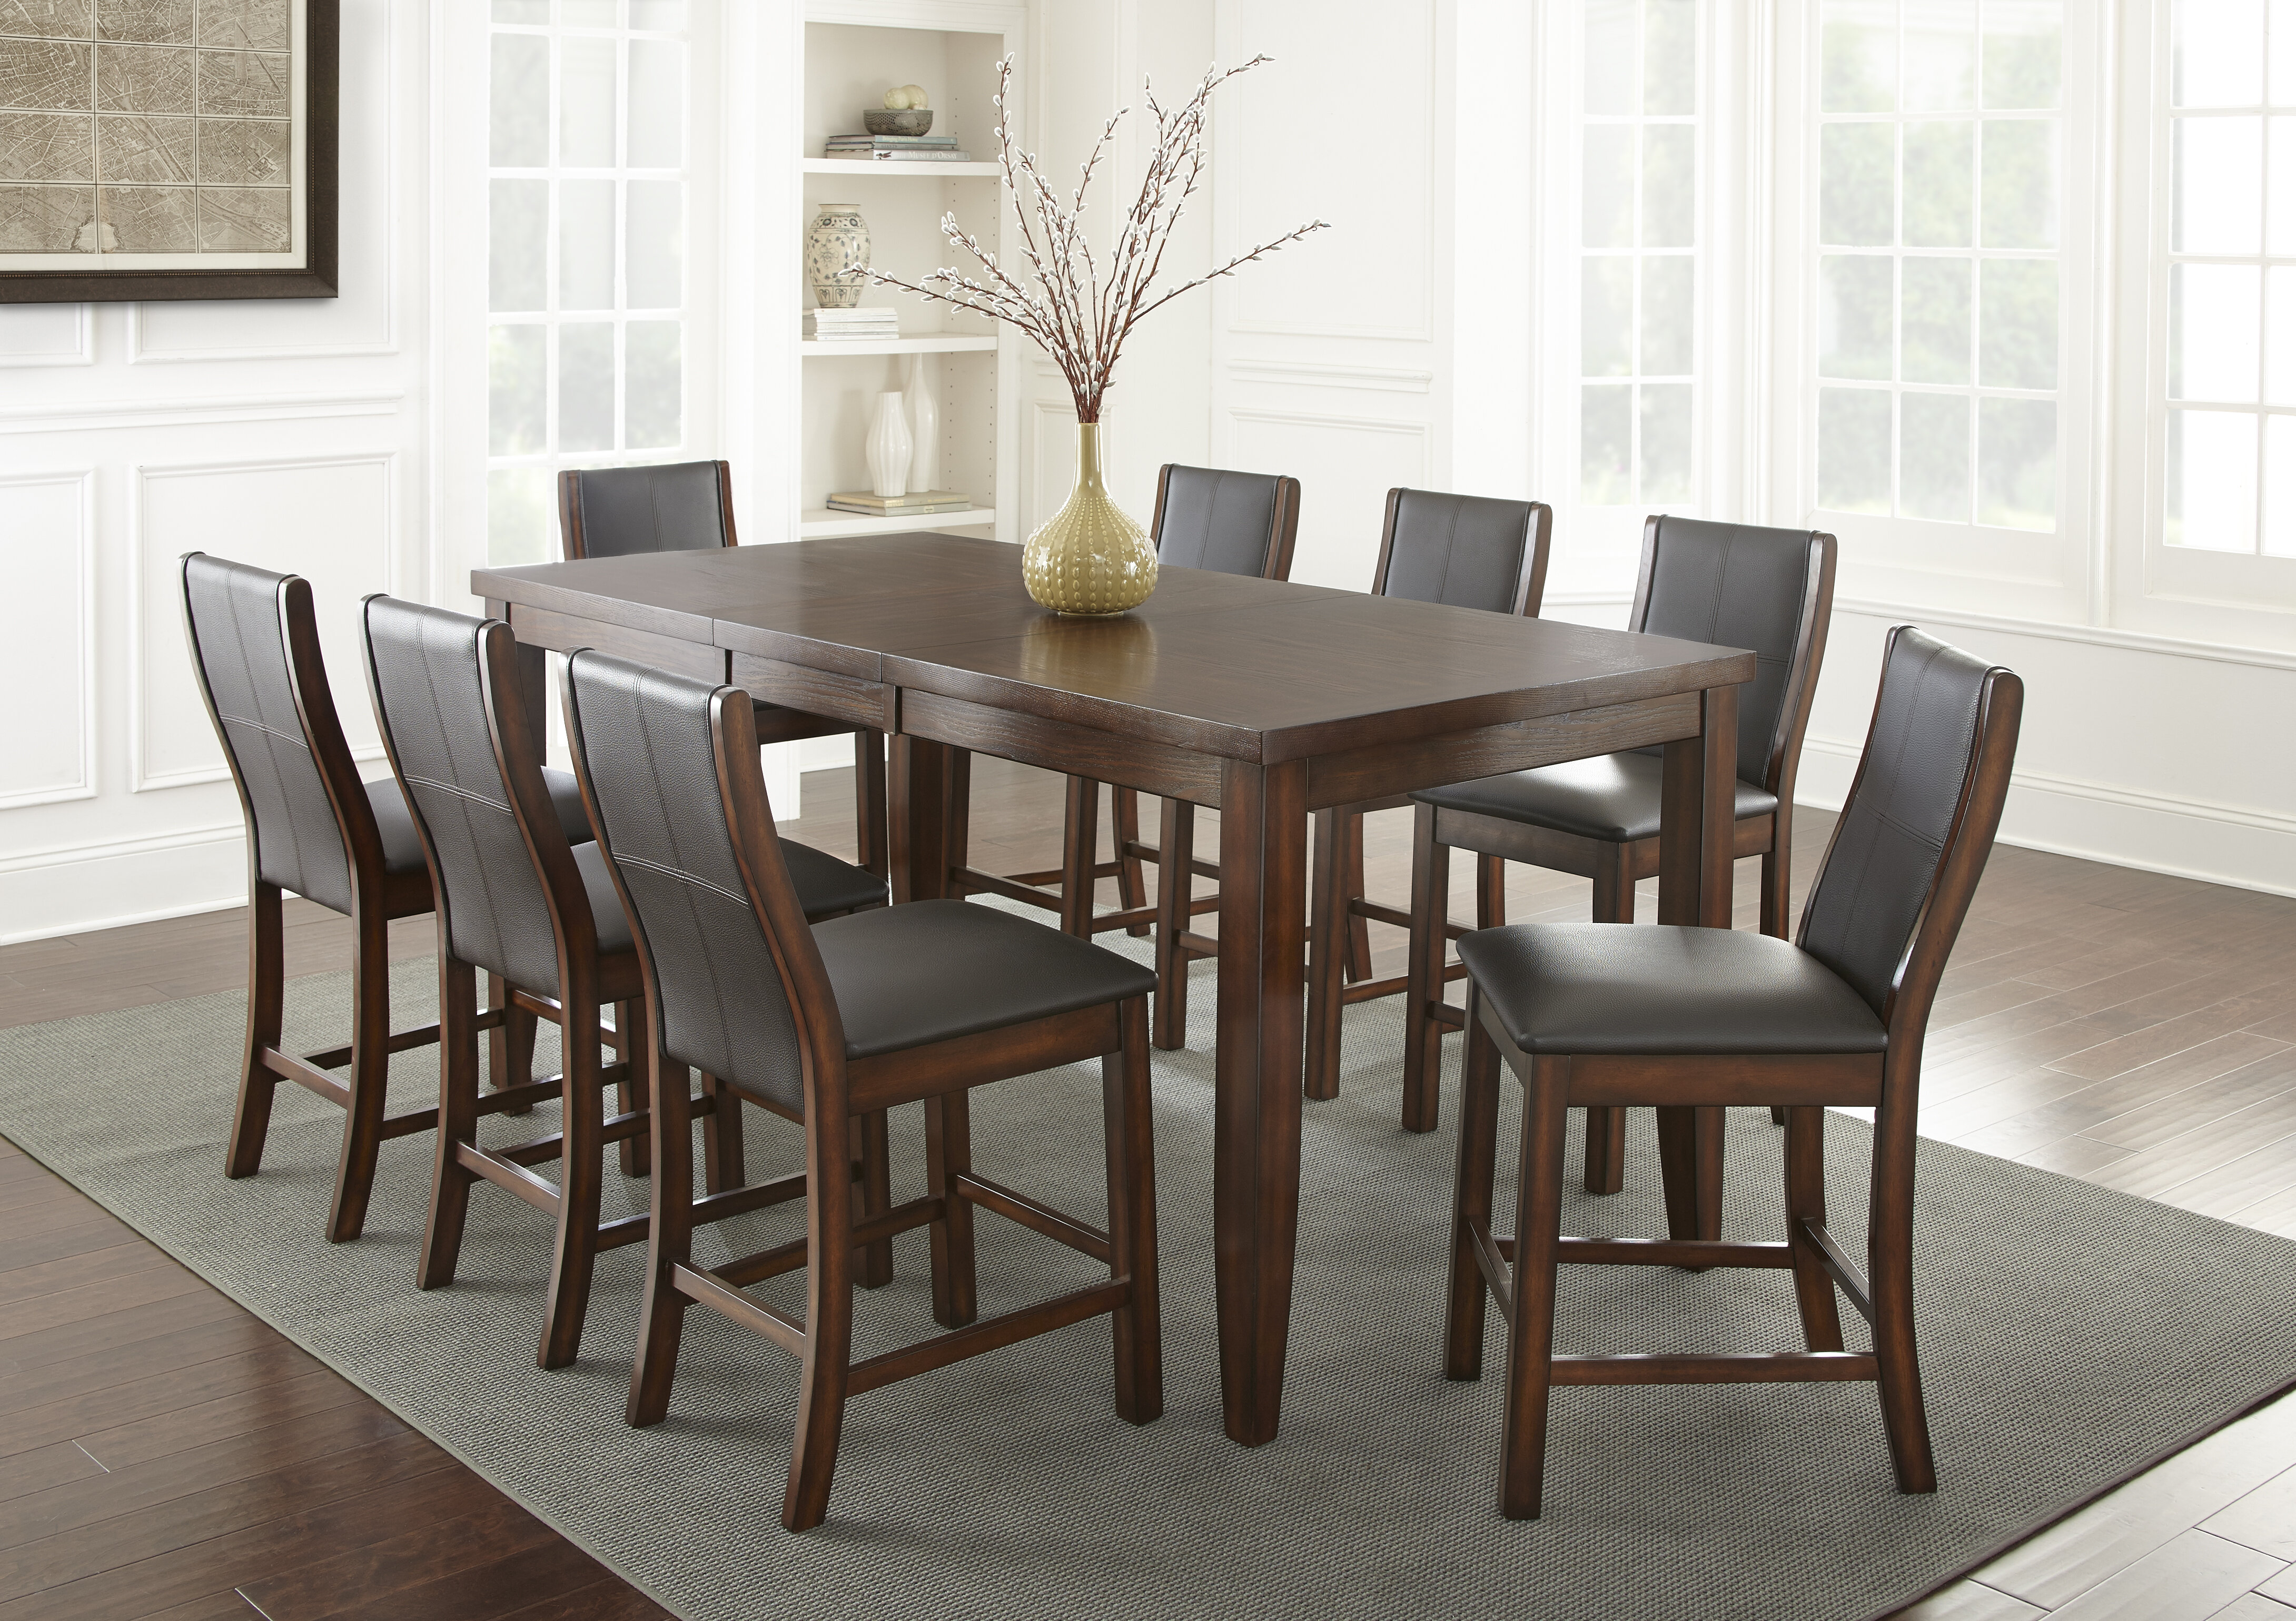 Incroyable Alcott Hill Abigale 9 Piece Counter Height Dining Set | Wayfair